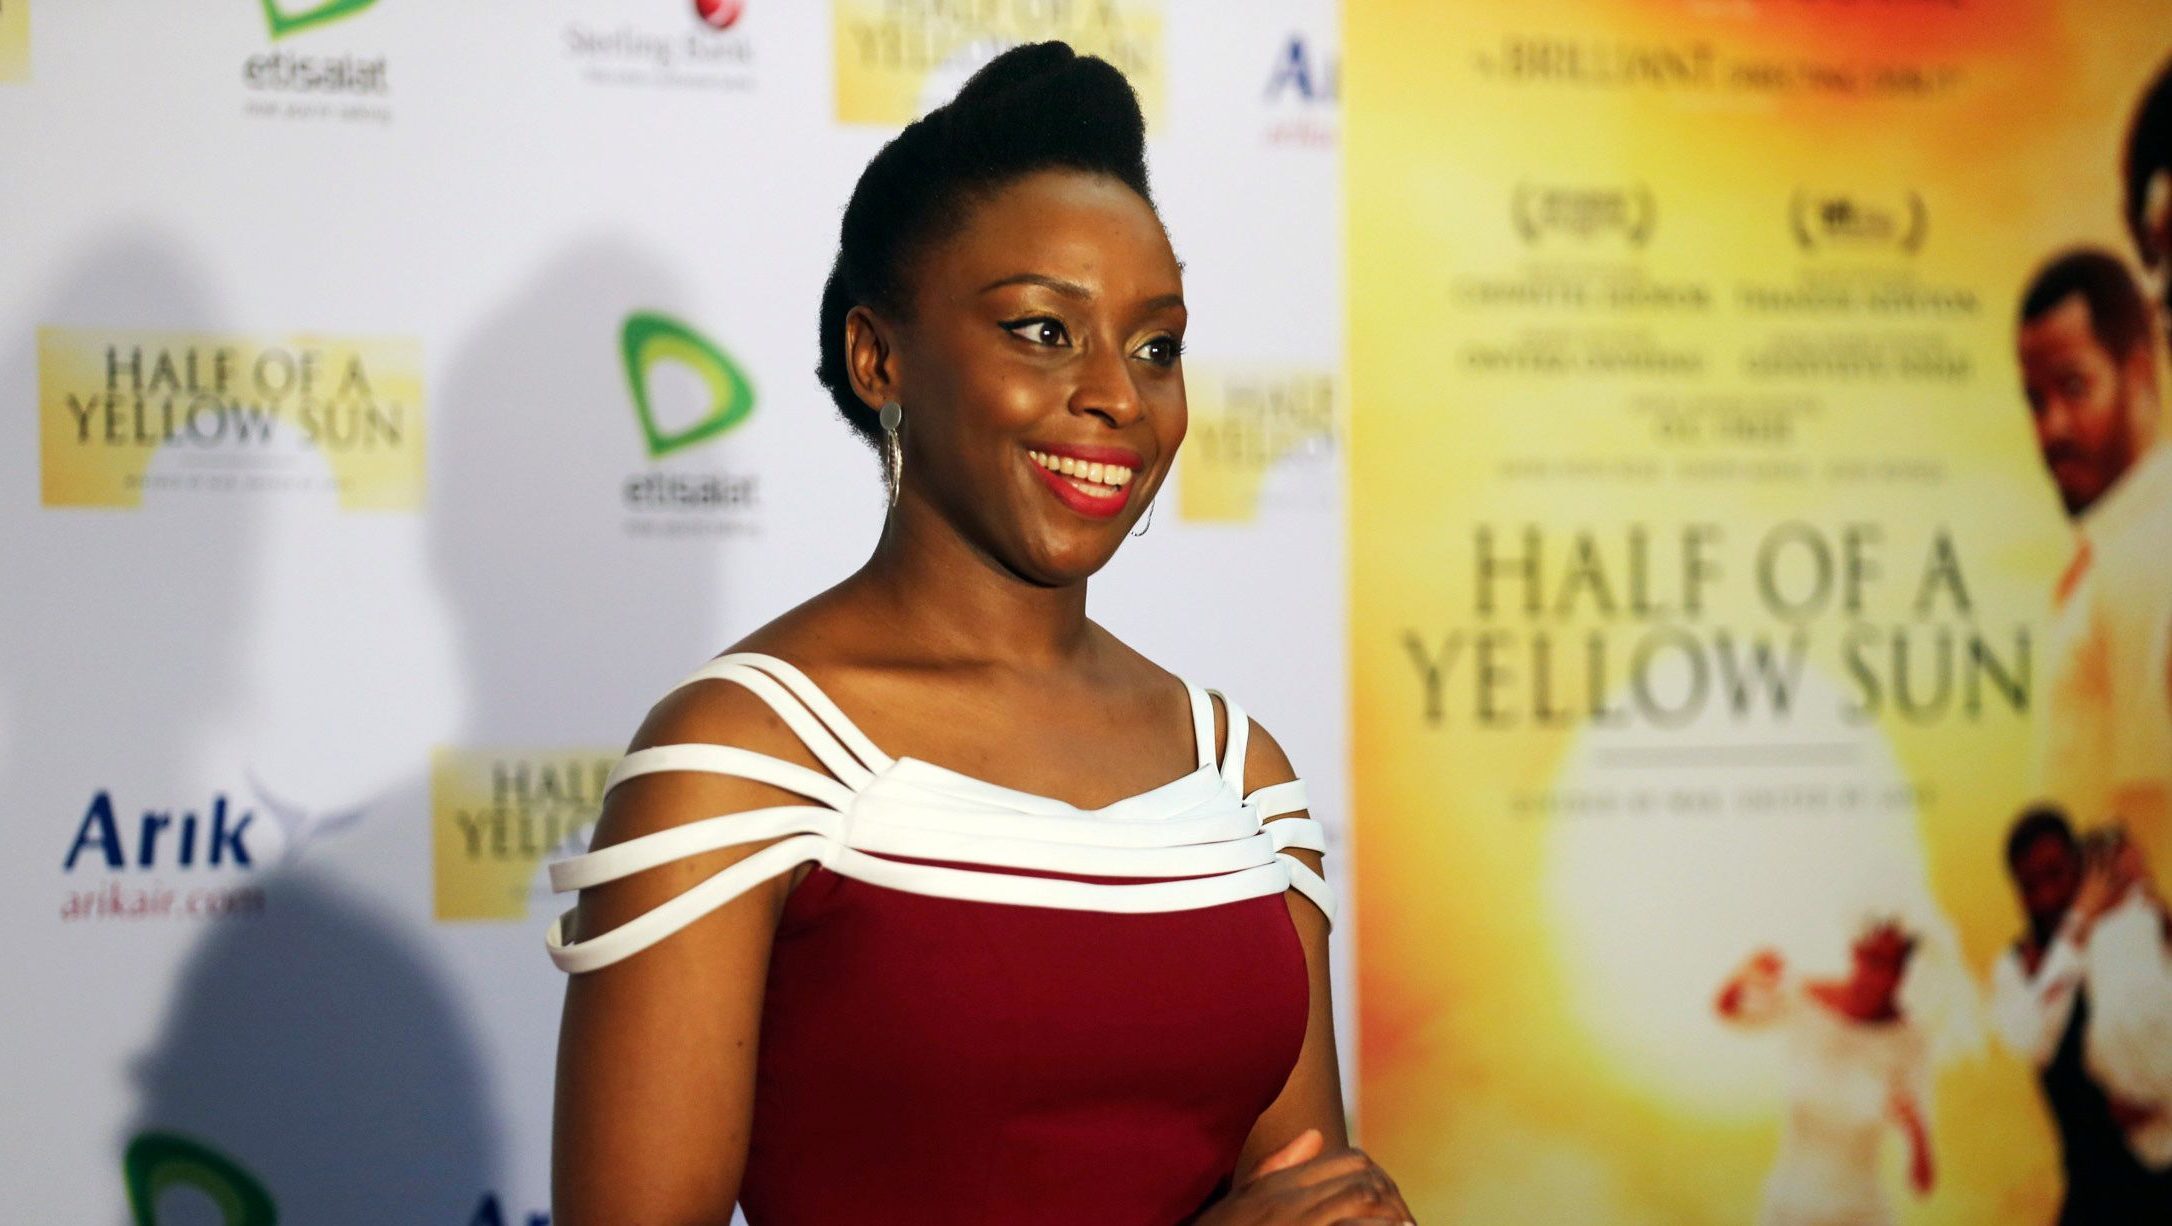 Nigerian novelist Chimamanda Ngozi Adichie arrives for the premier of film